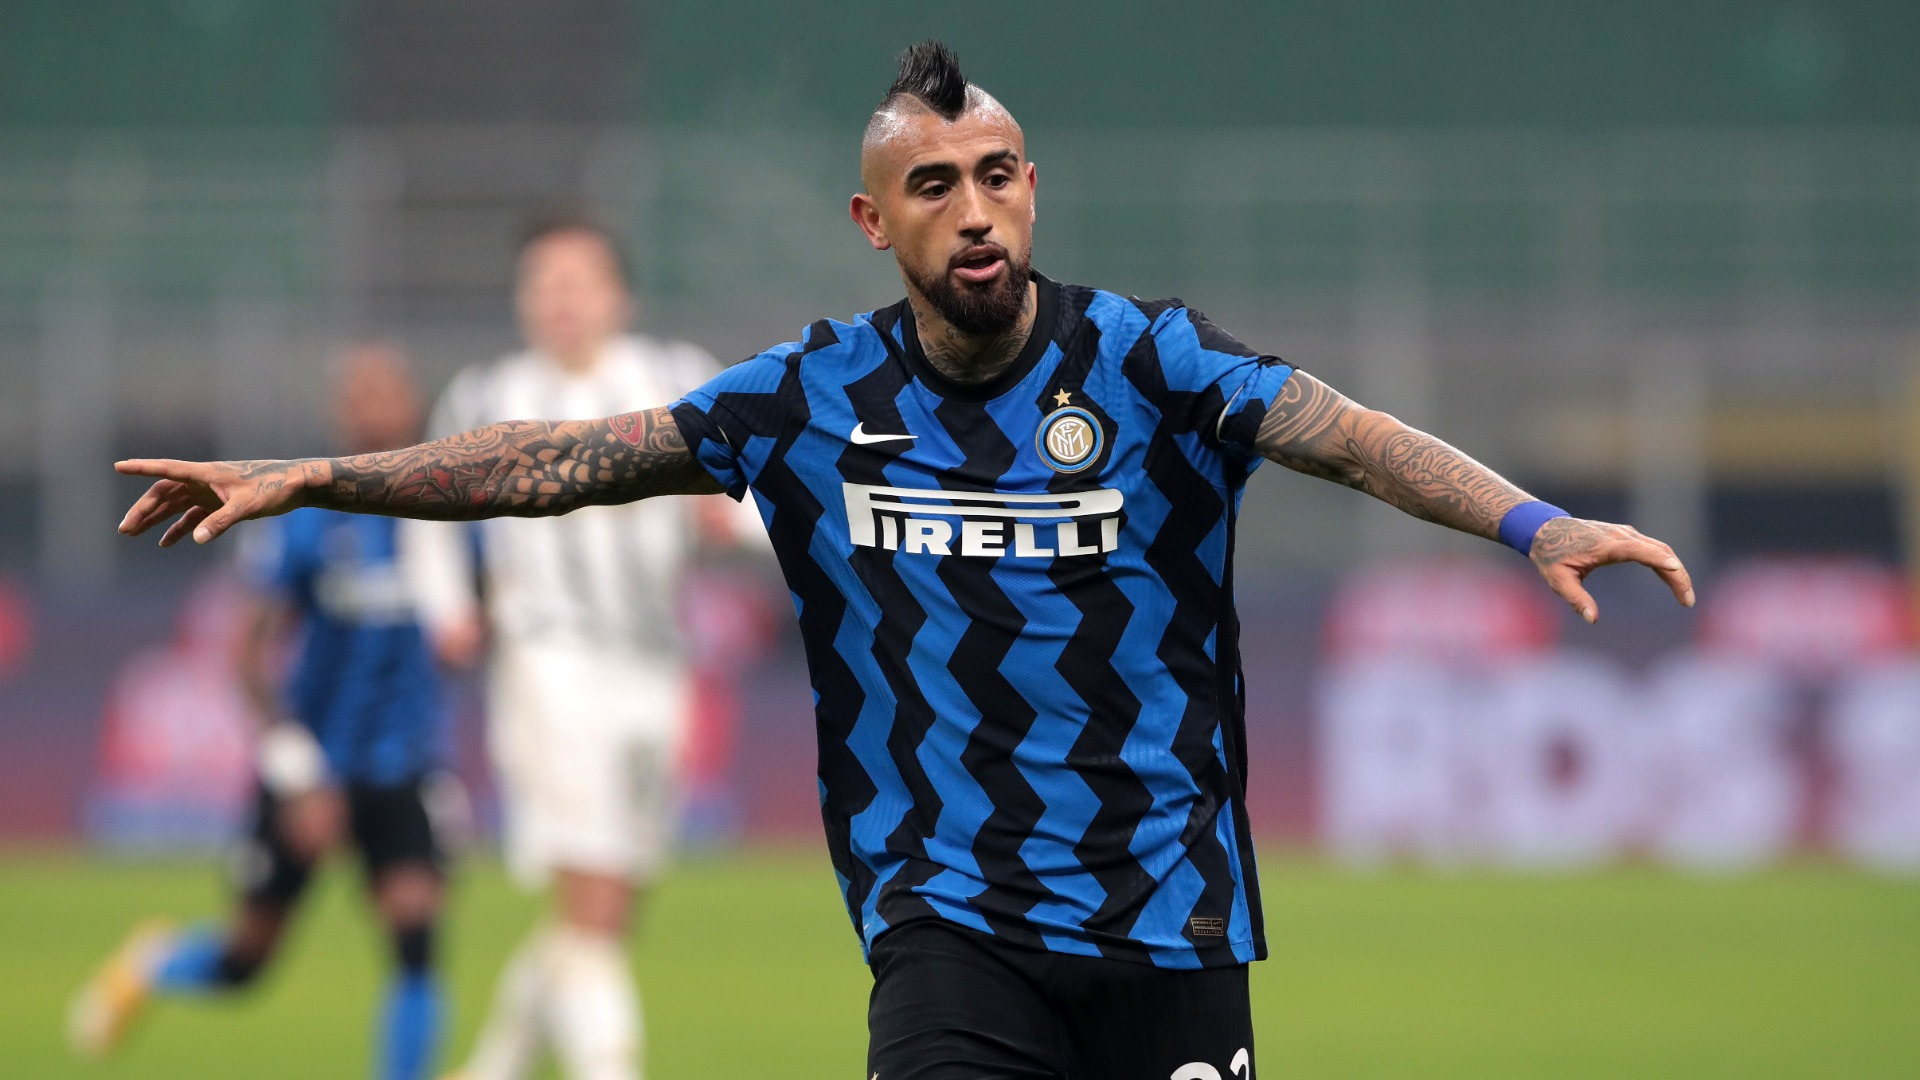 Vidal: Inter proved Scudetto credentials by beating Juventus